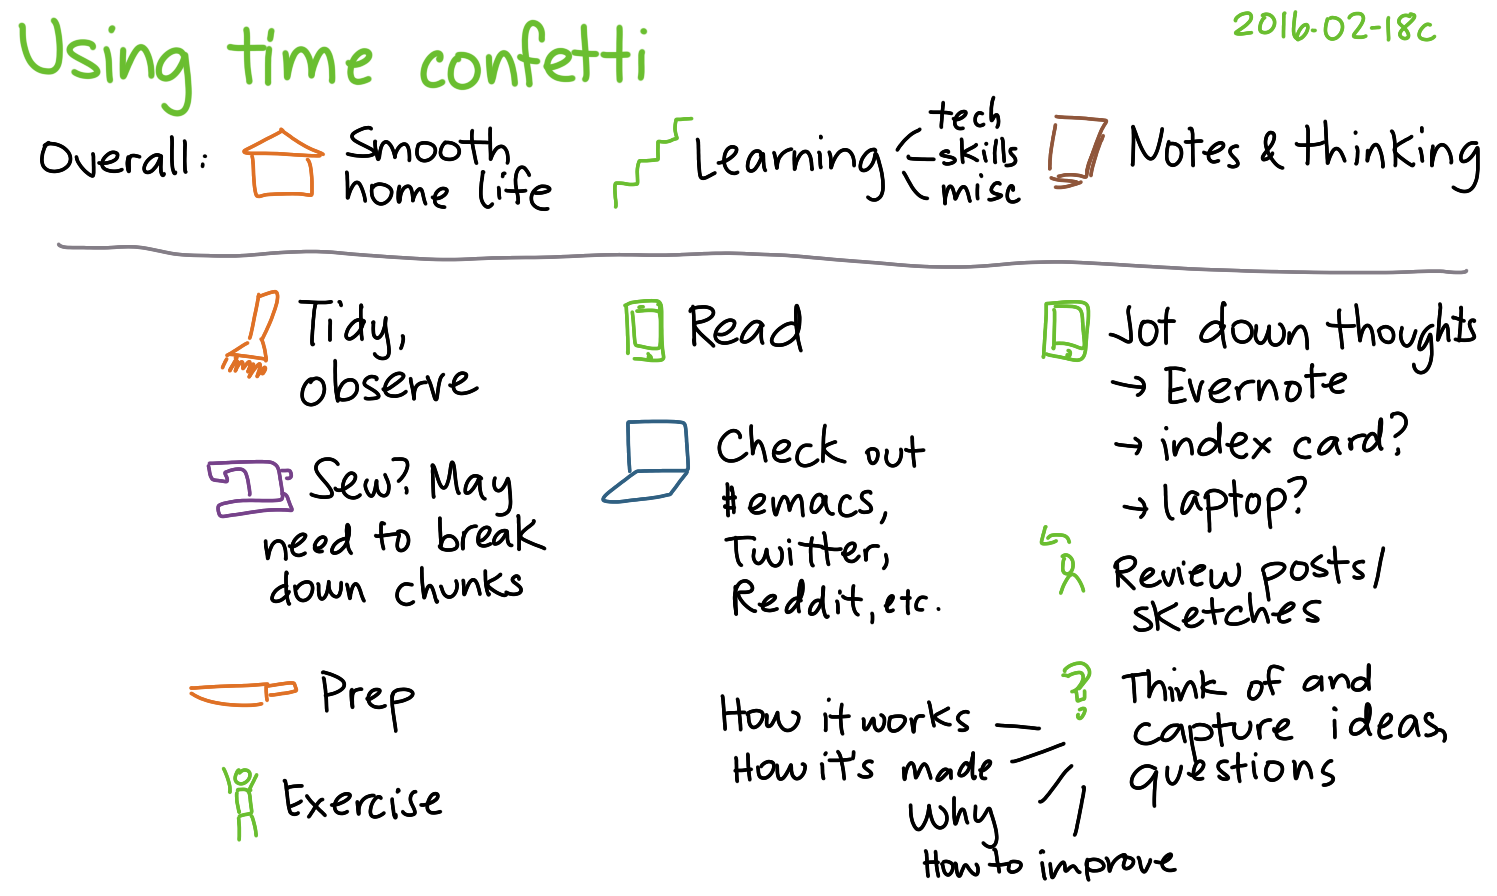 2016-02-18c Using time confetti -- index card #time #productivity.png